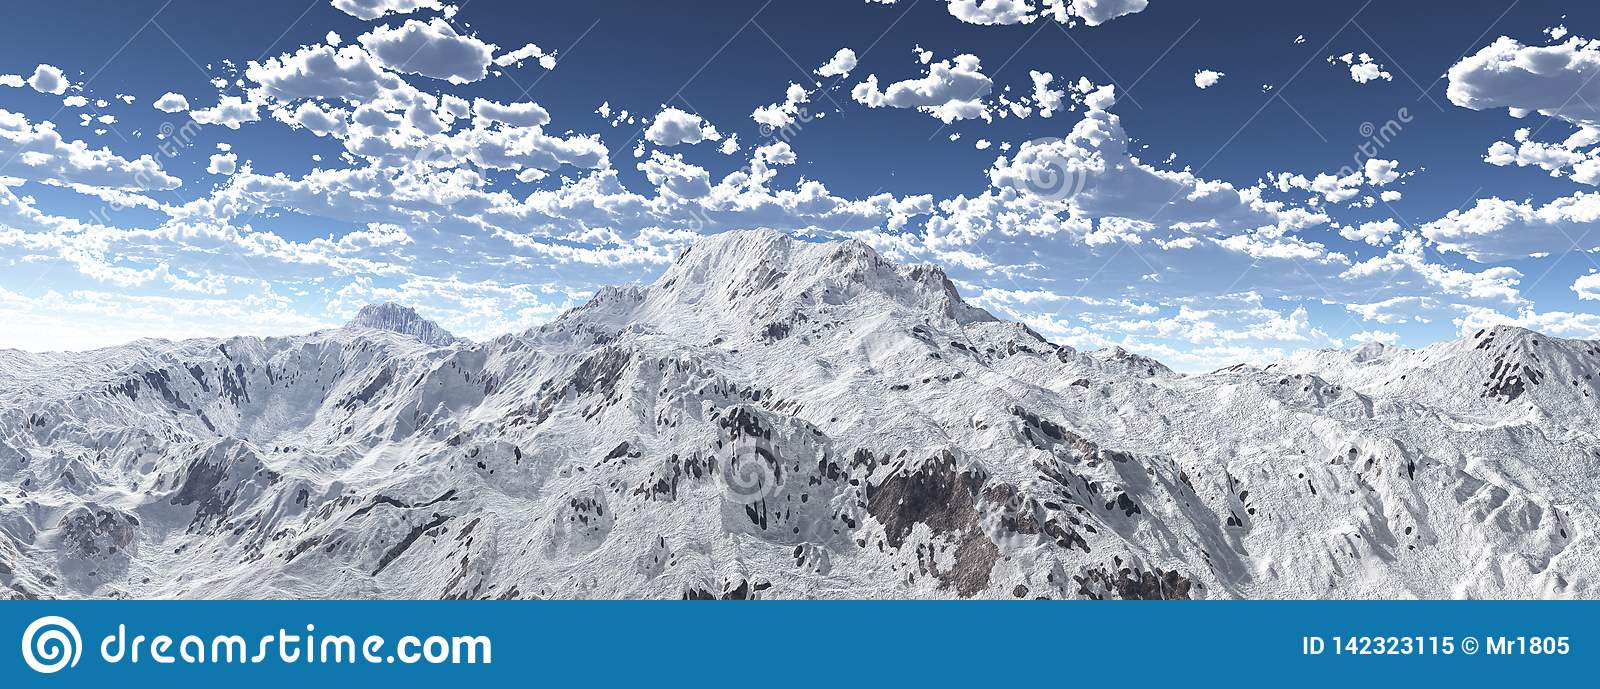 Mountain panorama with a cloudy sky